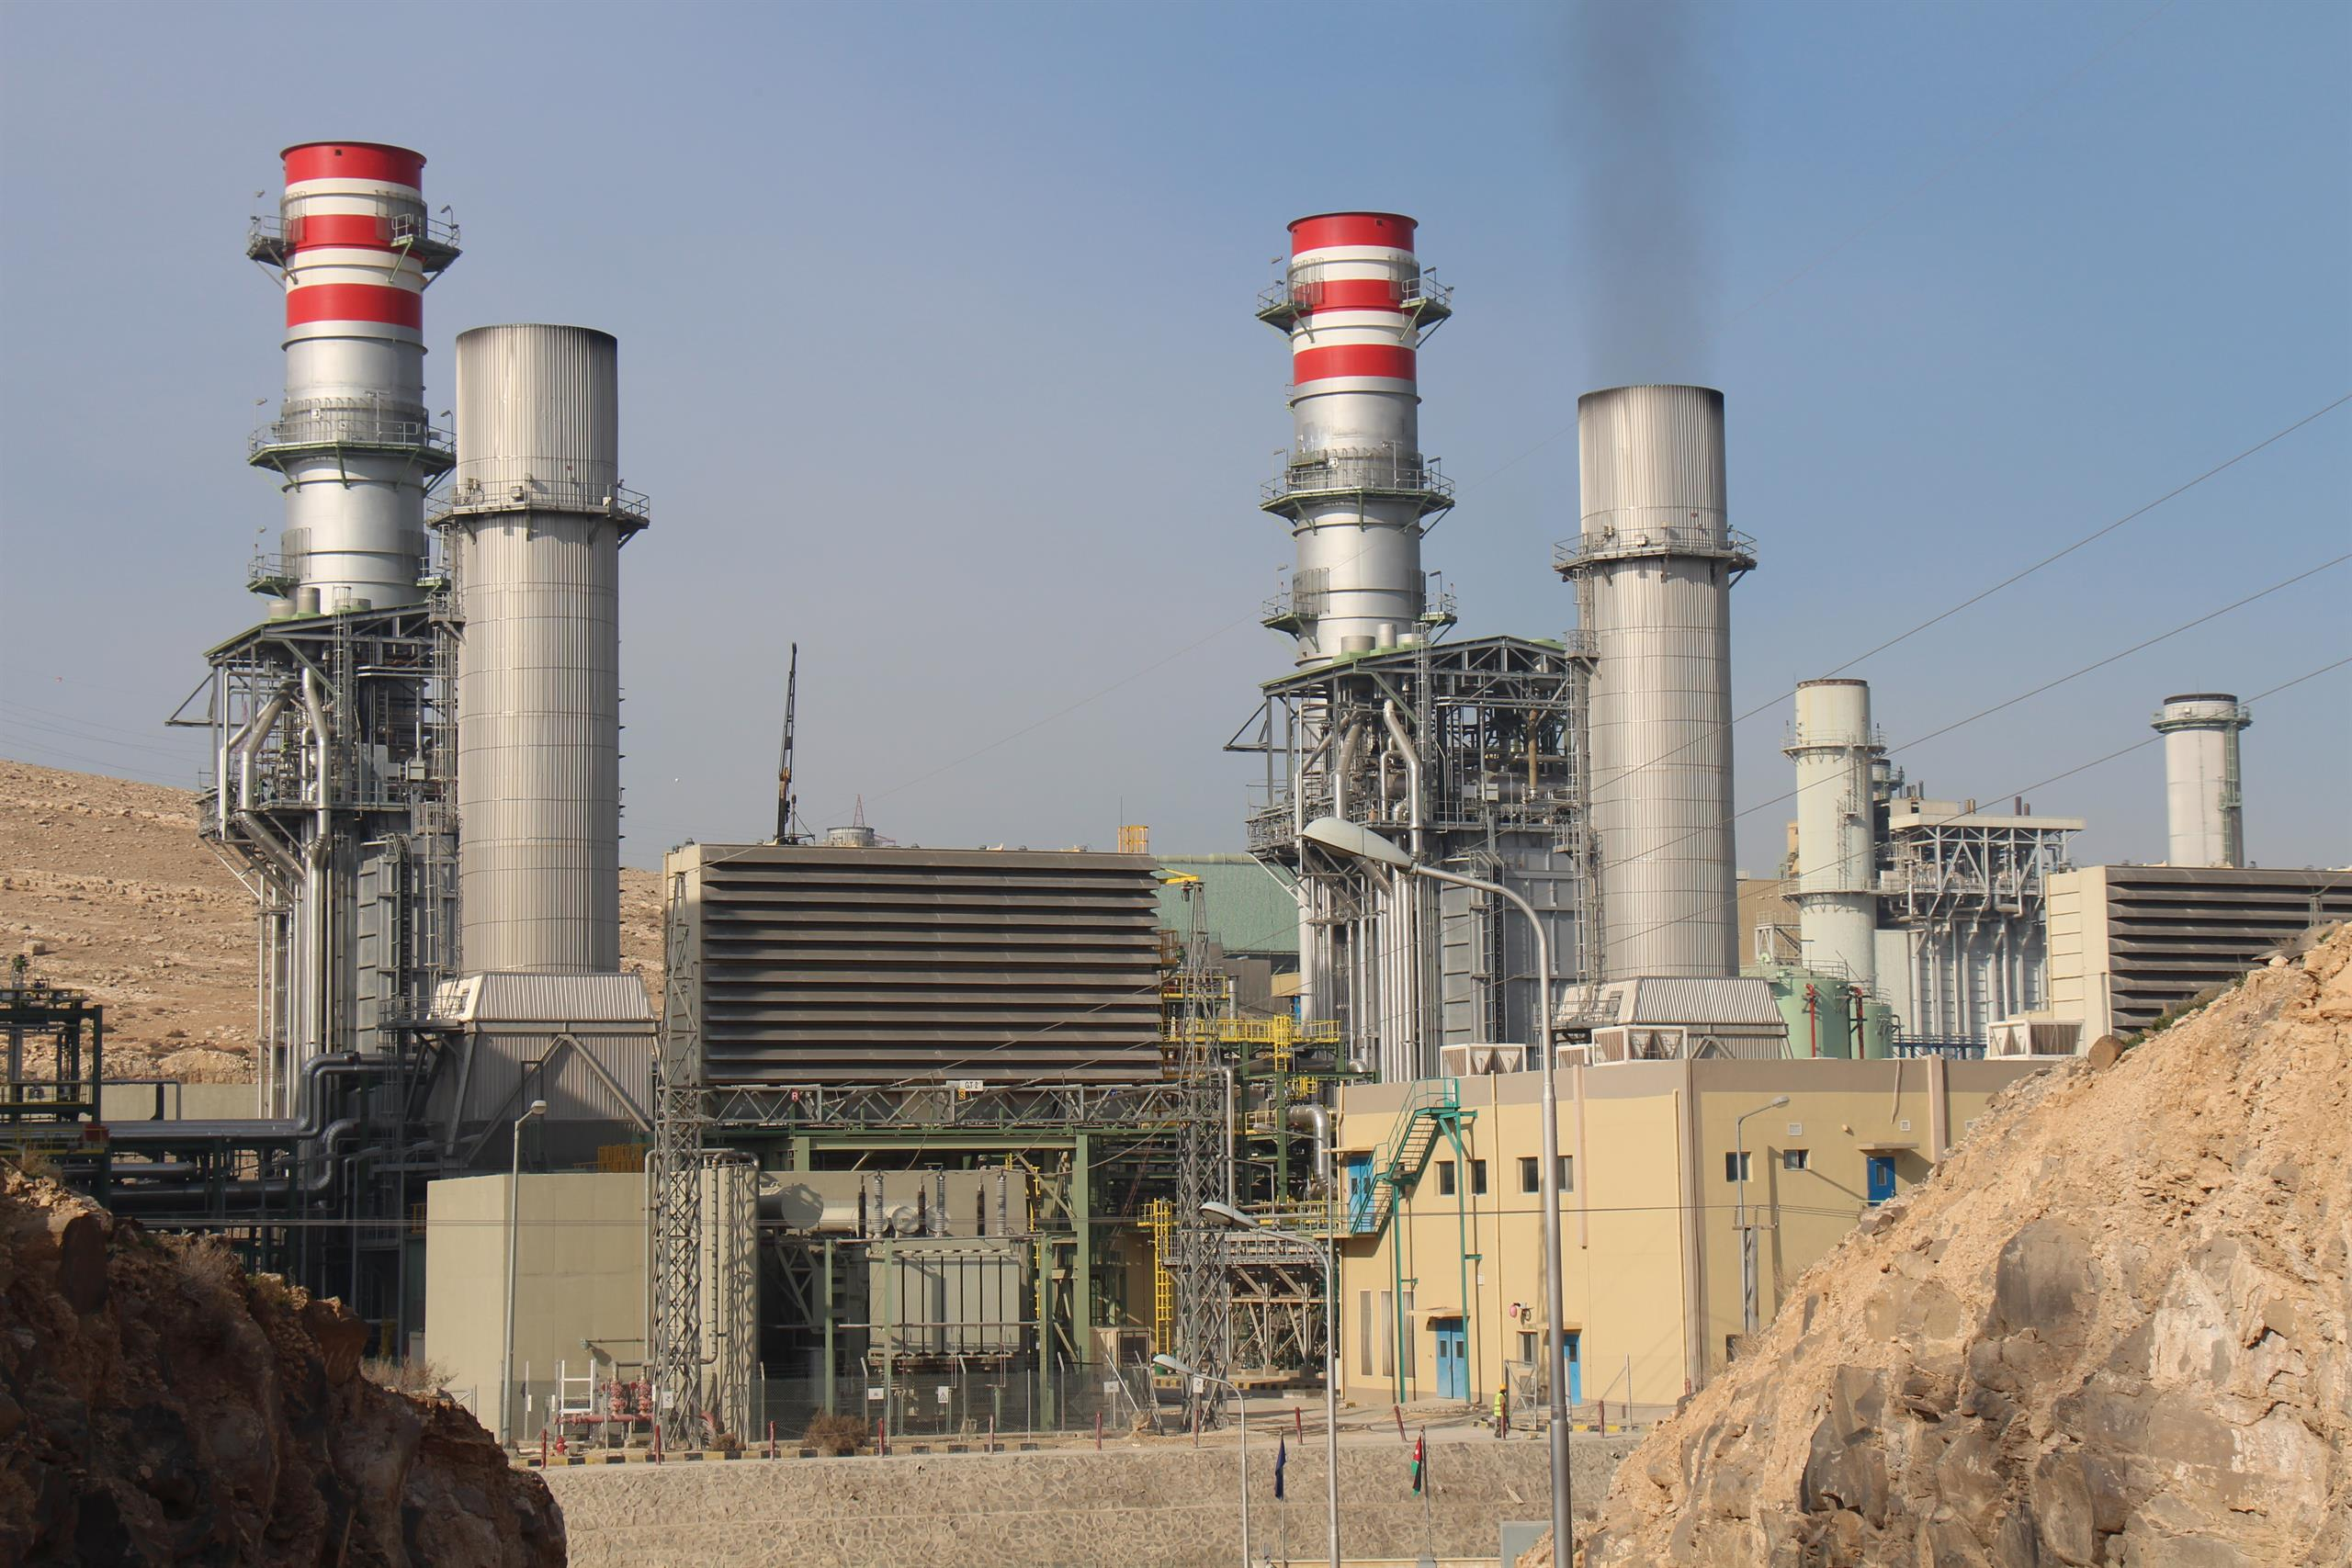 ACWA Power compares 3 bids to supply production units for Luxor power station